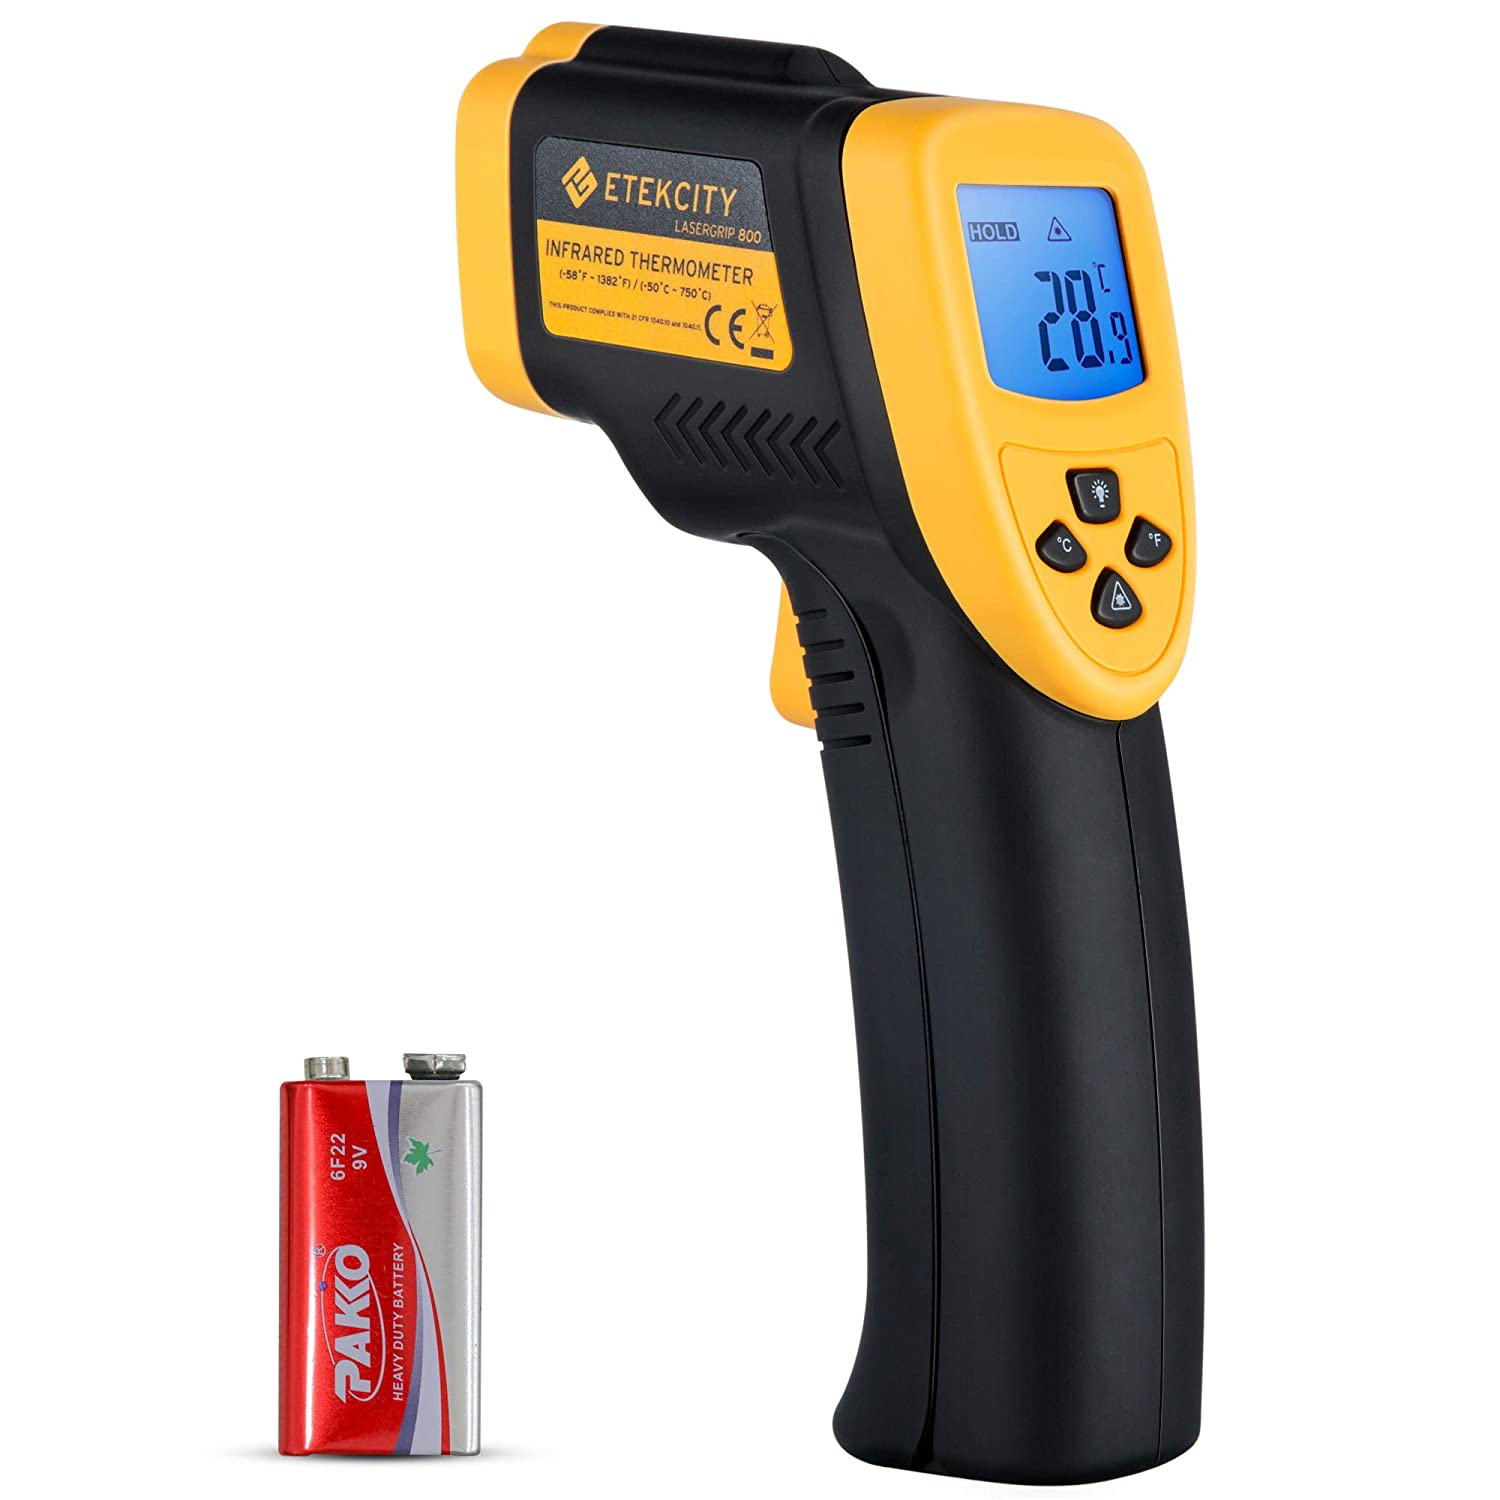 Etekcity Lasergrip 800 Digital Infrared Thermometer Laser Thermometer Temperature Gun Non-contact -58℉ - 1382℉ (-50℃ to 750℃), Instant Read Thermometer for Meat Refrigerator Pool Oven